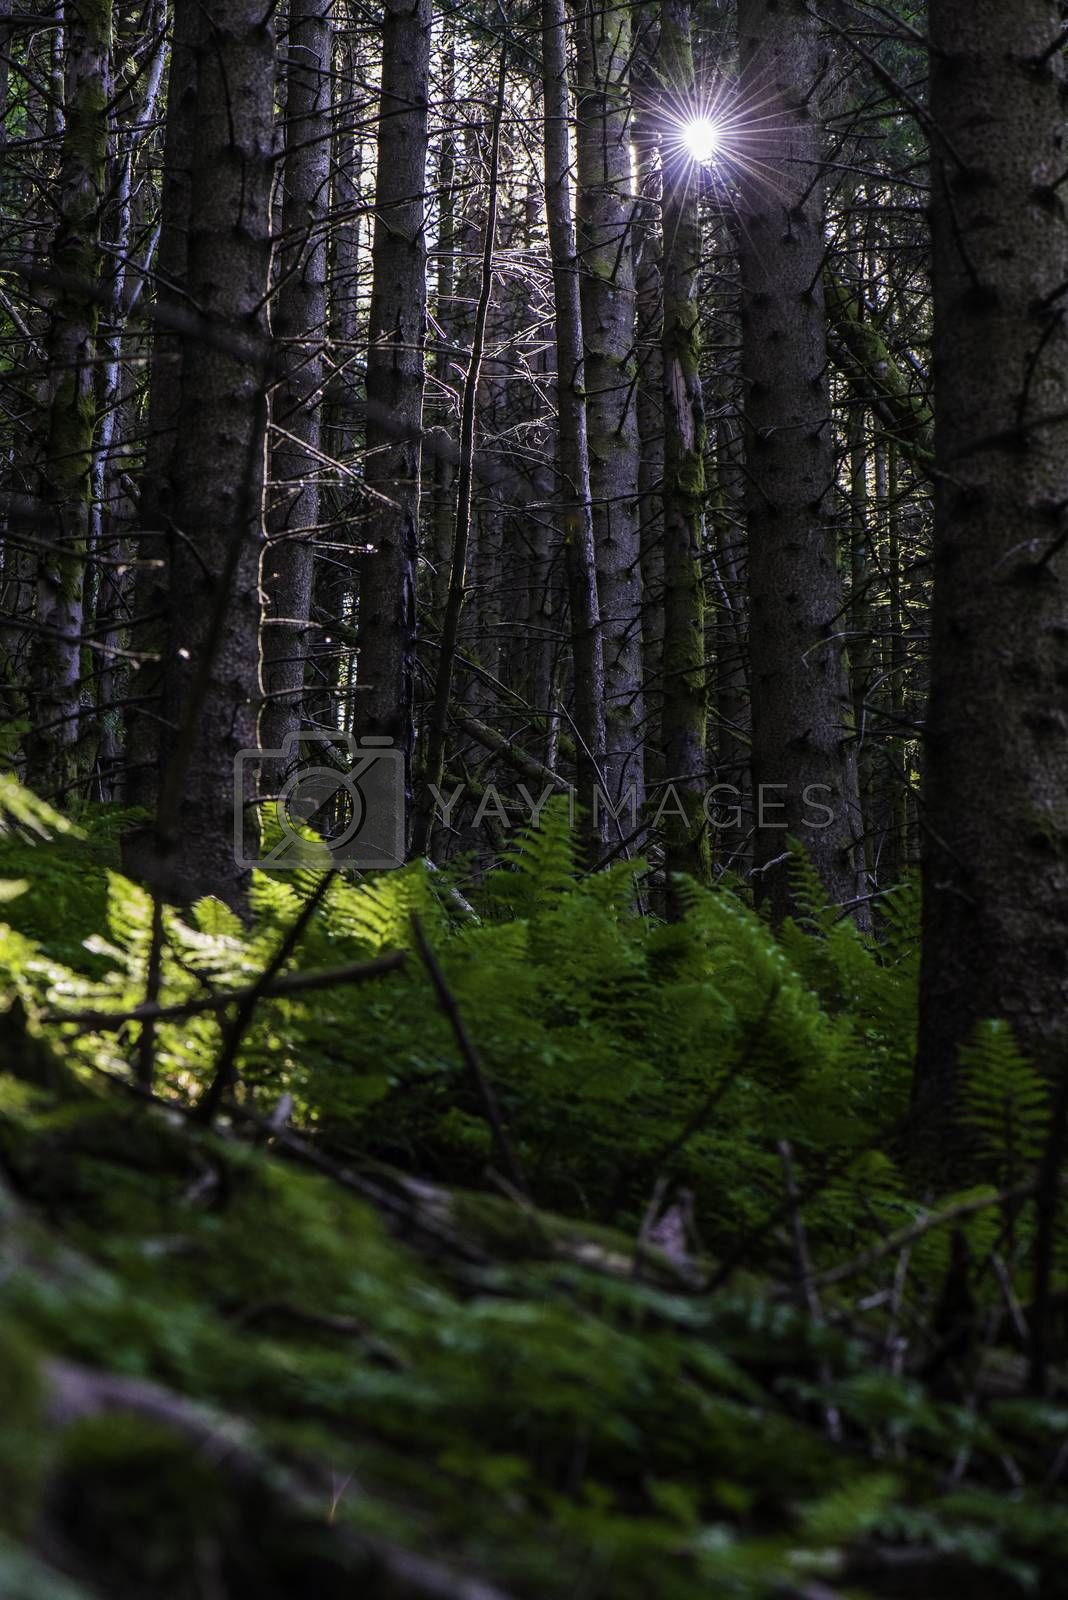 The sun between the spruce threes in the forest.